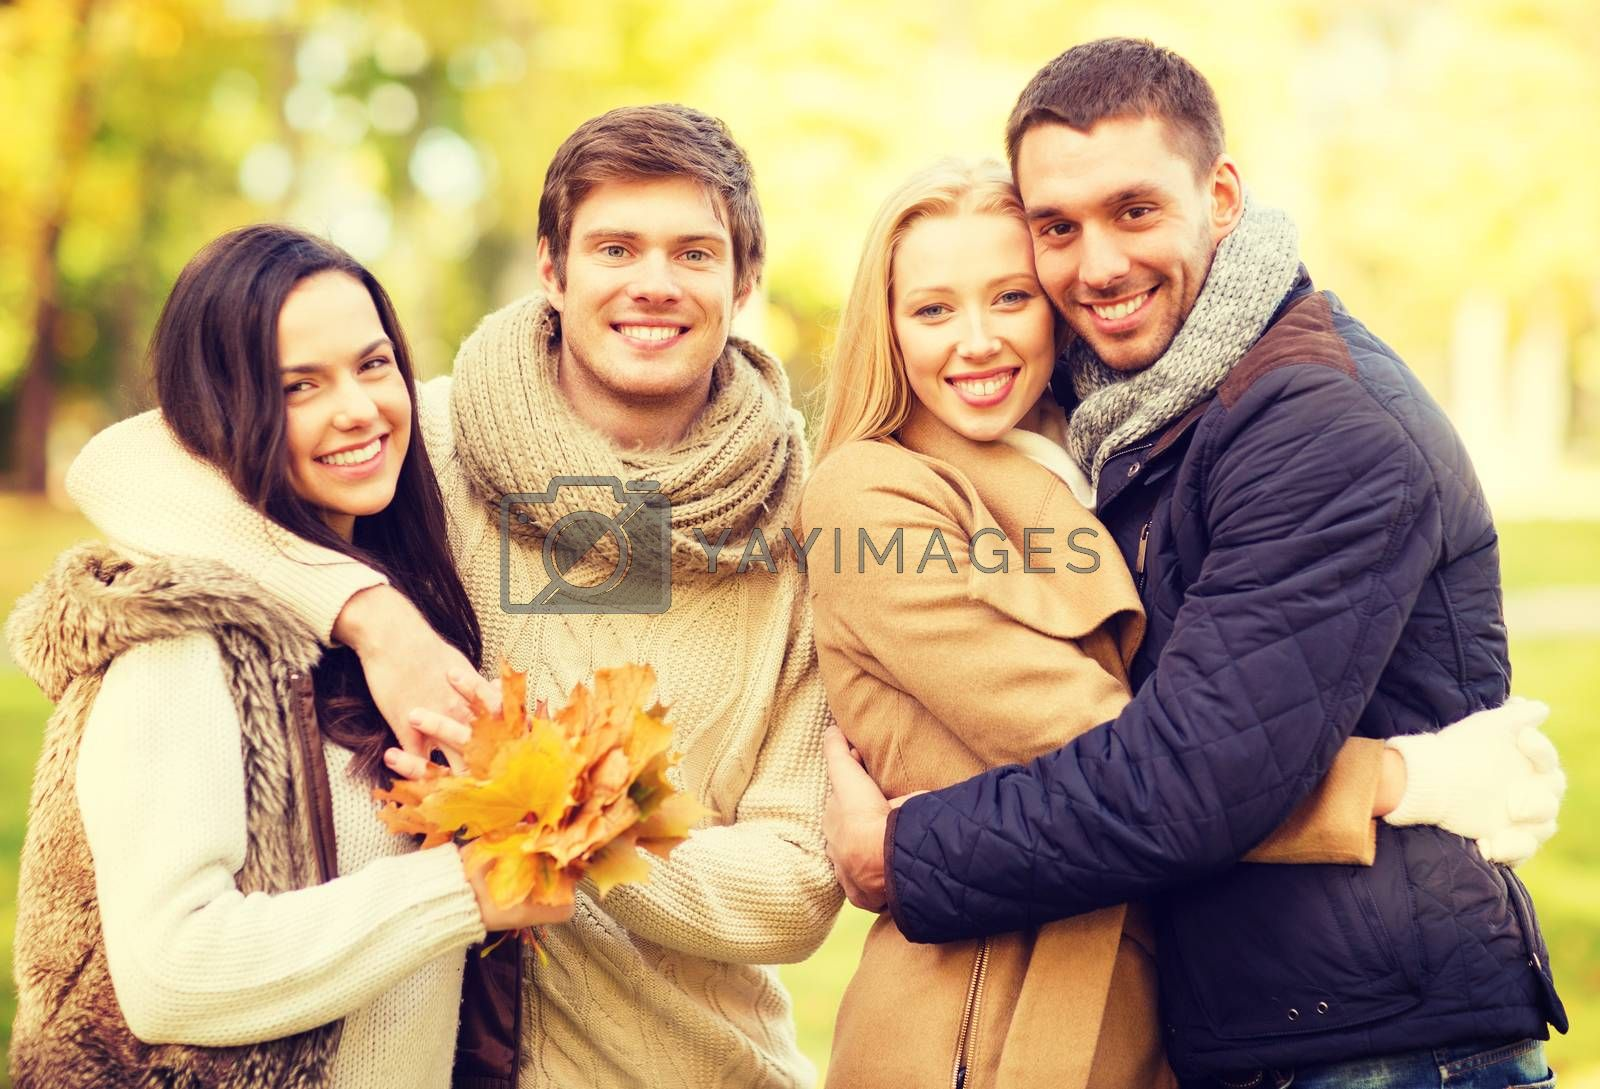 summer, holidays, vacation, happy people concept - group of friends or couples having fun in autumn park